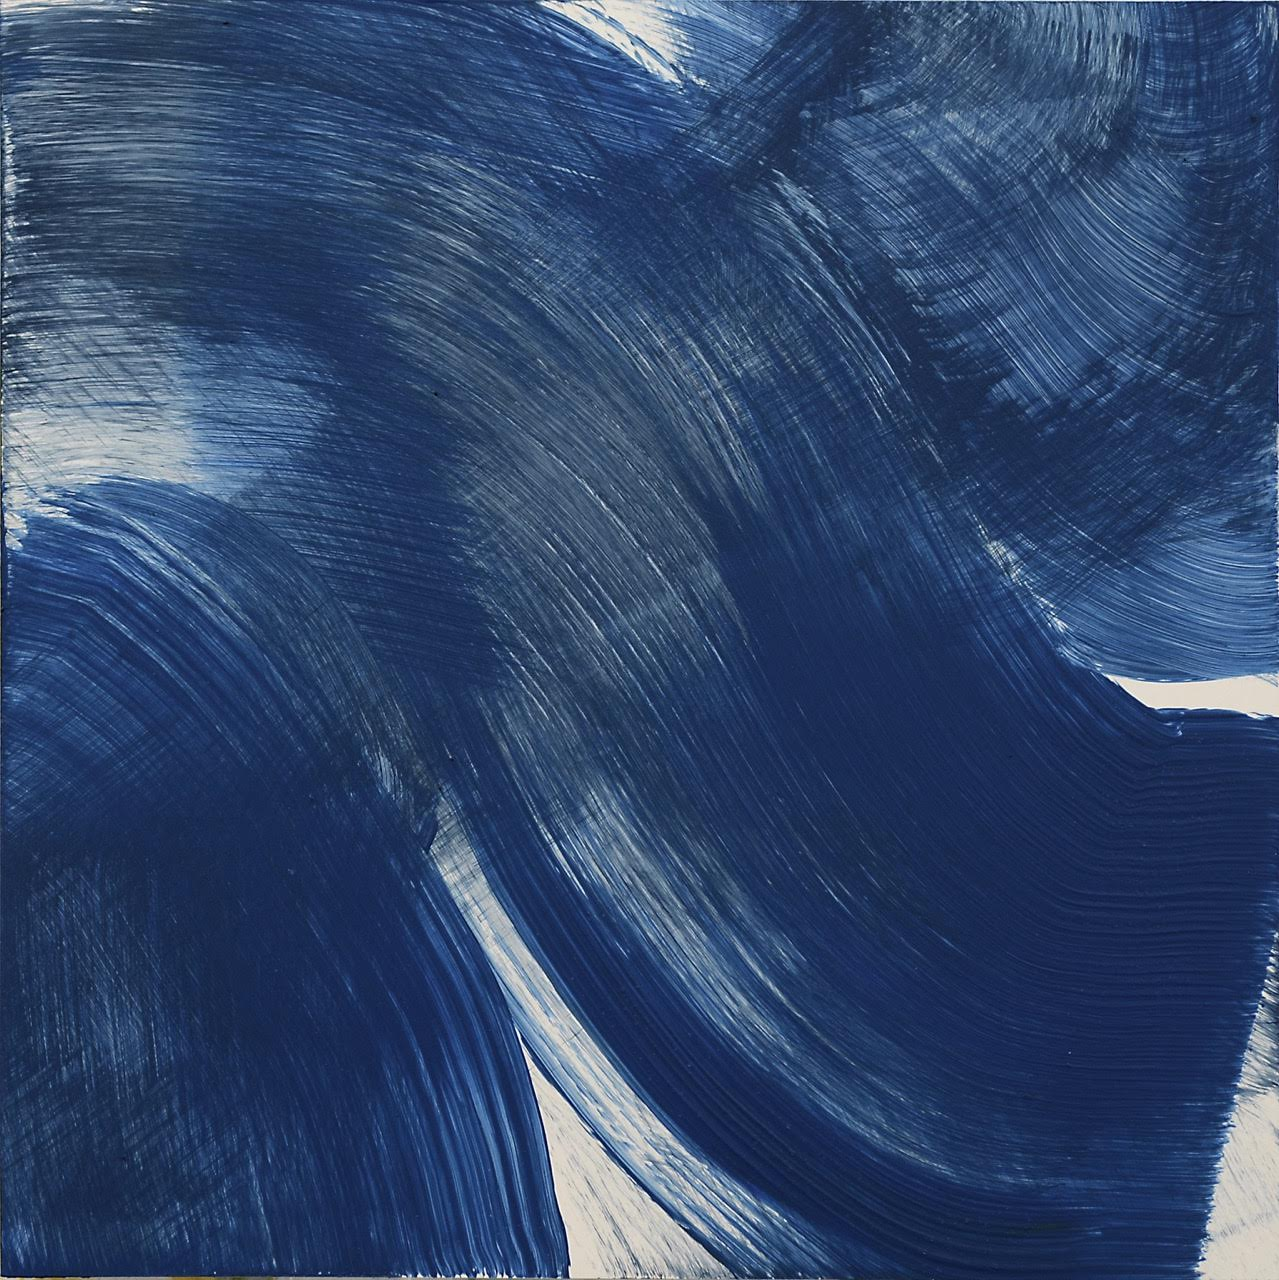 Avy's blue painting